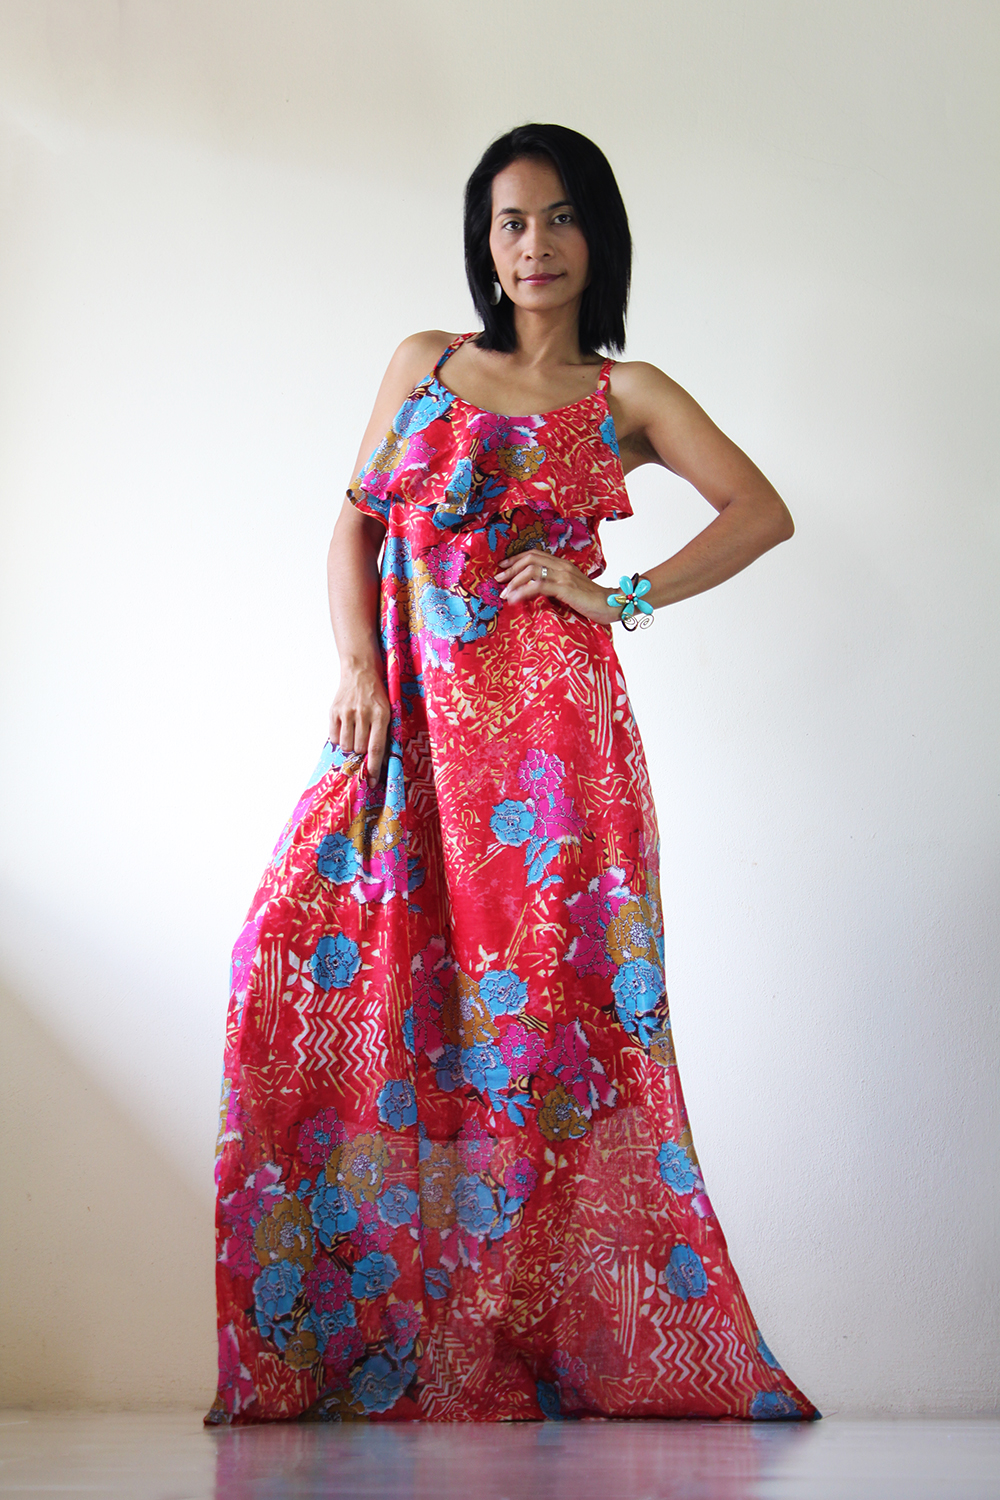 Long Summer Dress Maxi Floral Bohemian Cocktail Gown : Sunny Dreams Collection